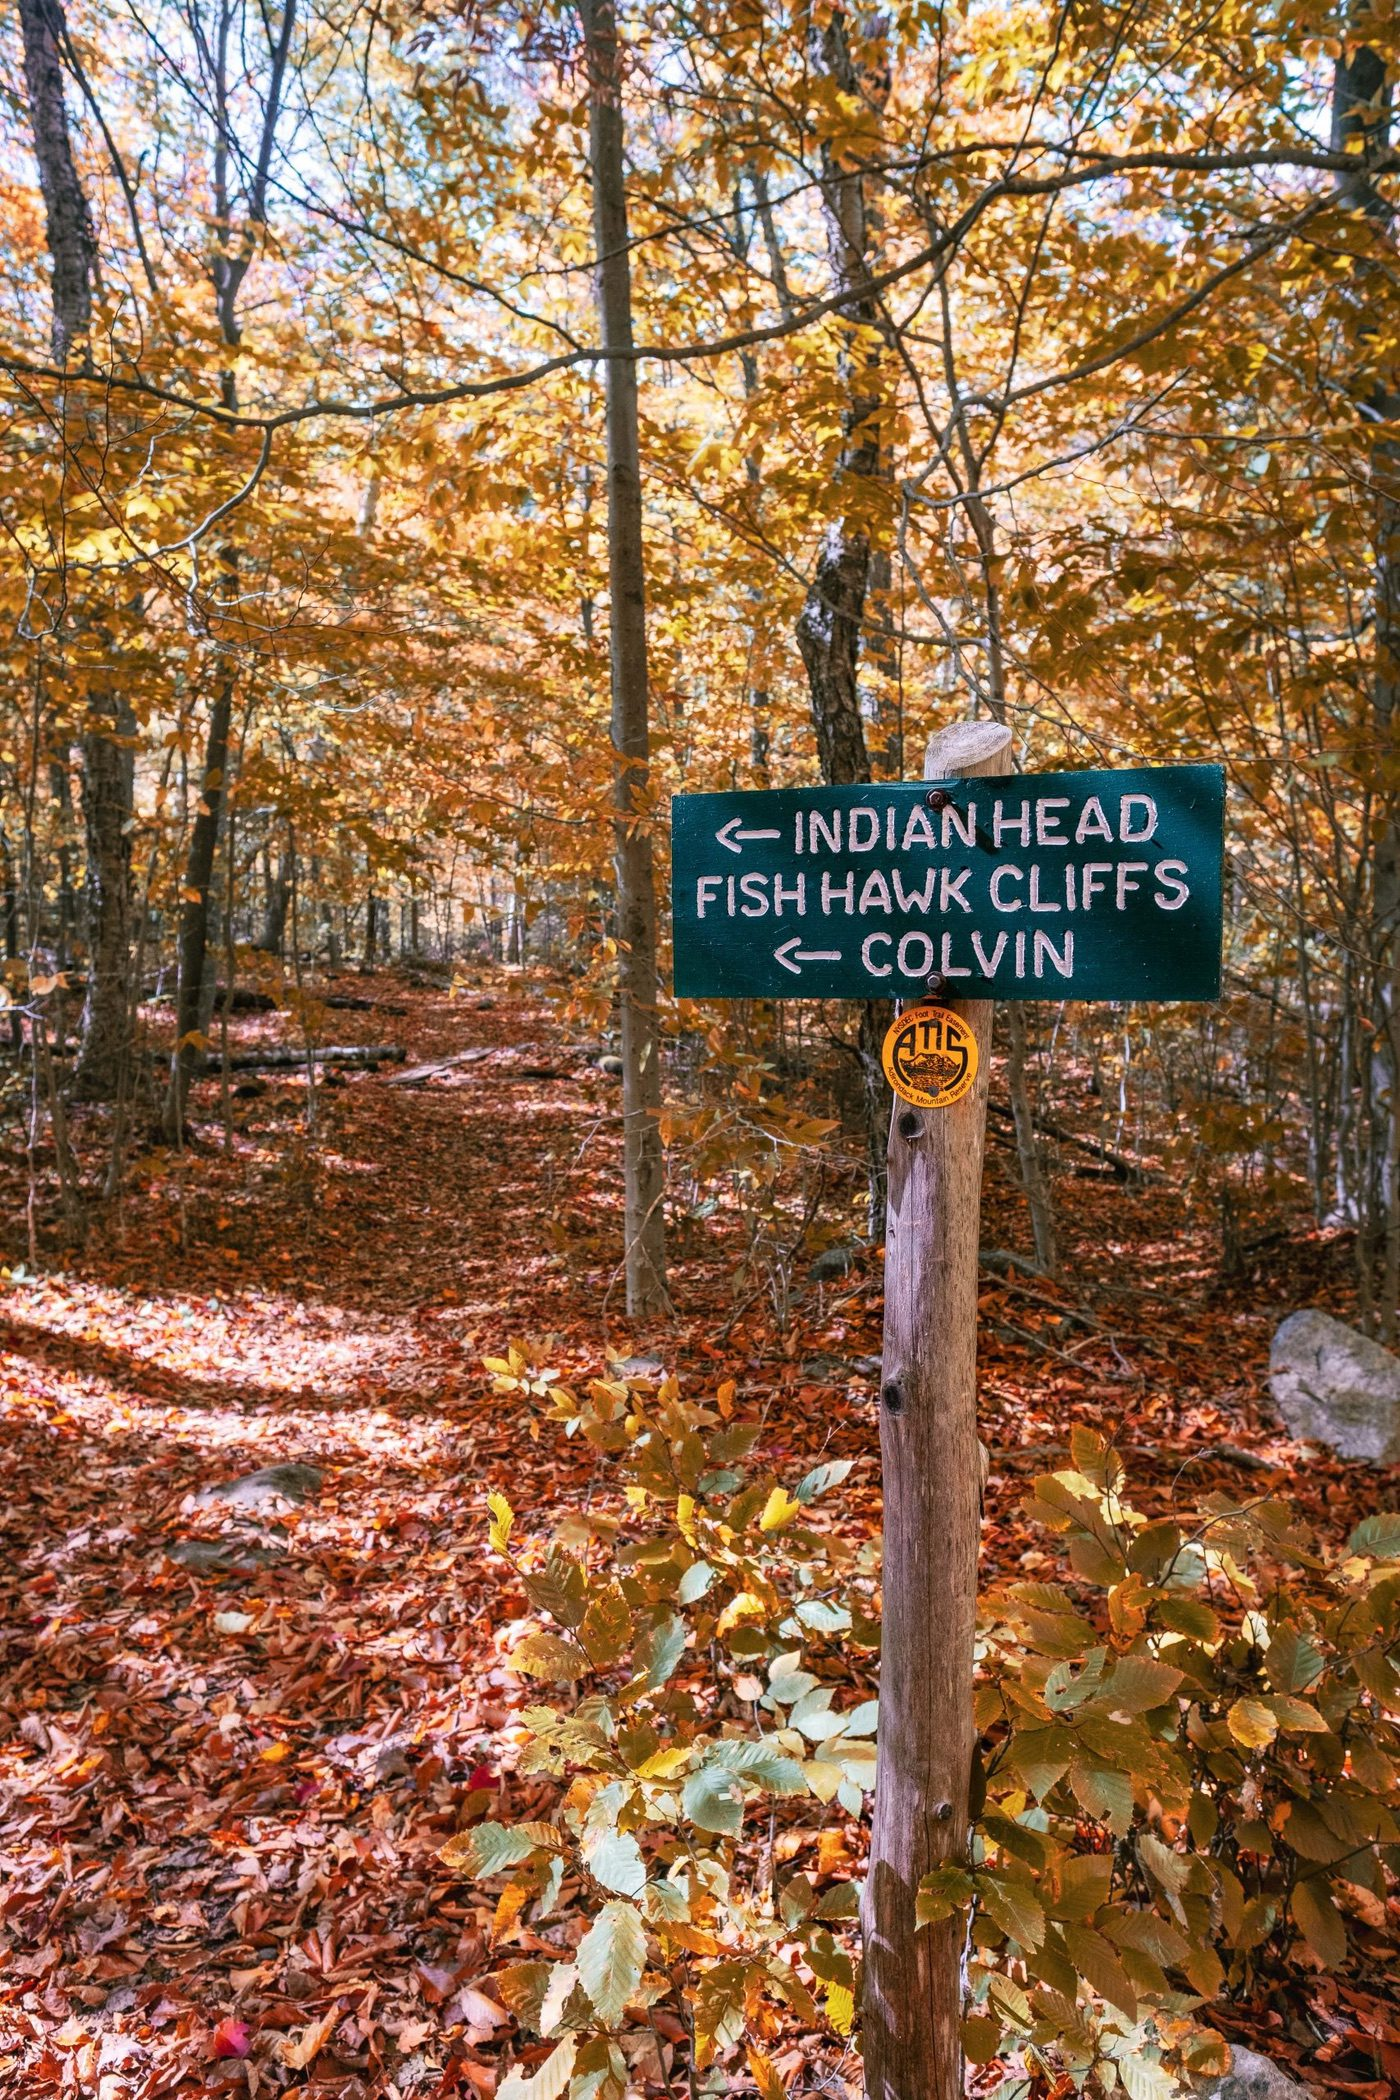 Foot trail to Indian Head and Fish Hawk Cliffs